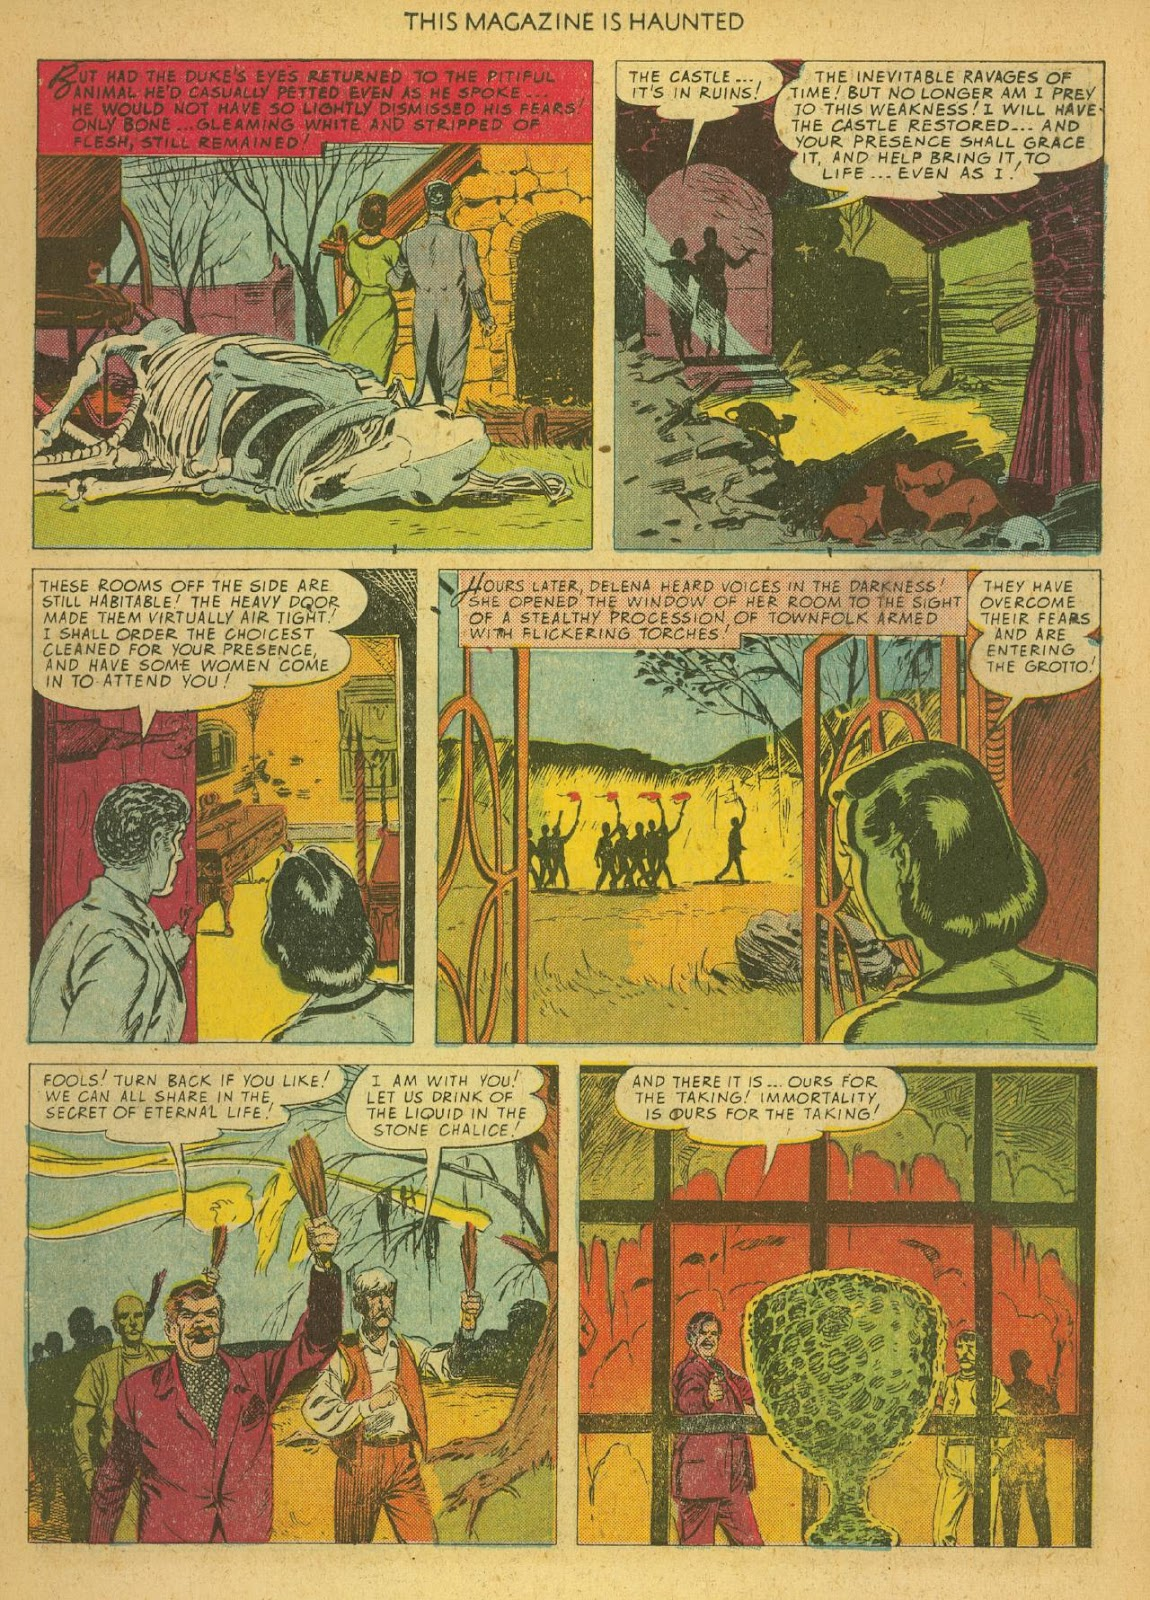 Read online This Magazine Is Haunted comic -  Issue #1 - 11